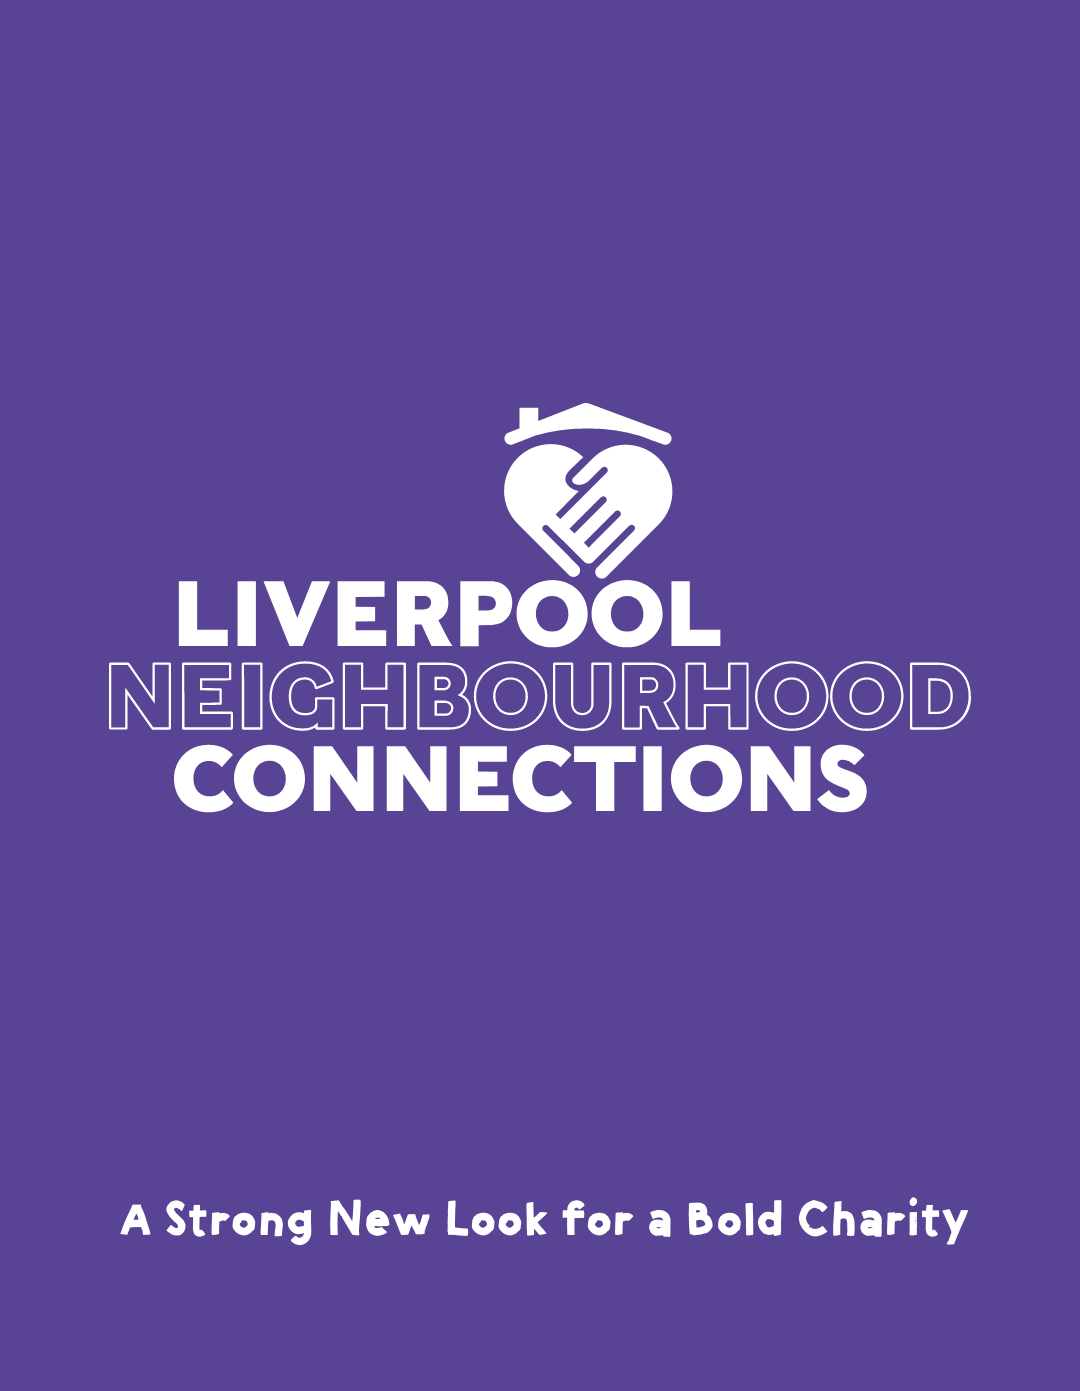 How We Created a Strong New Look for a Bold Charity